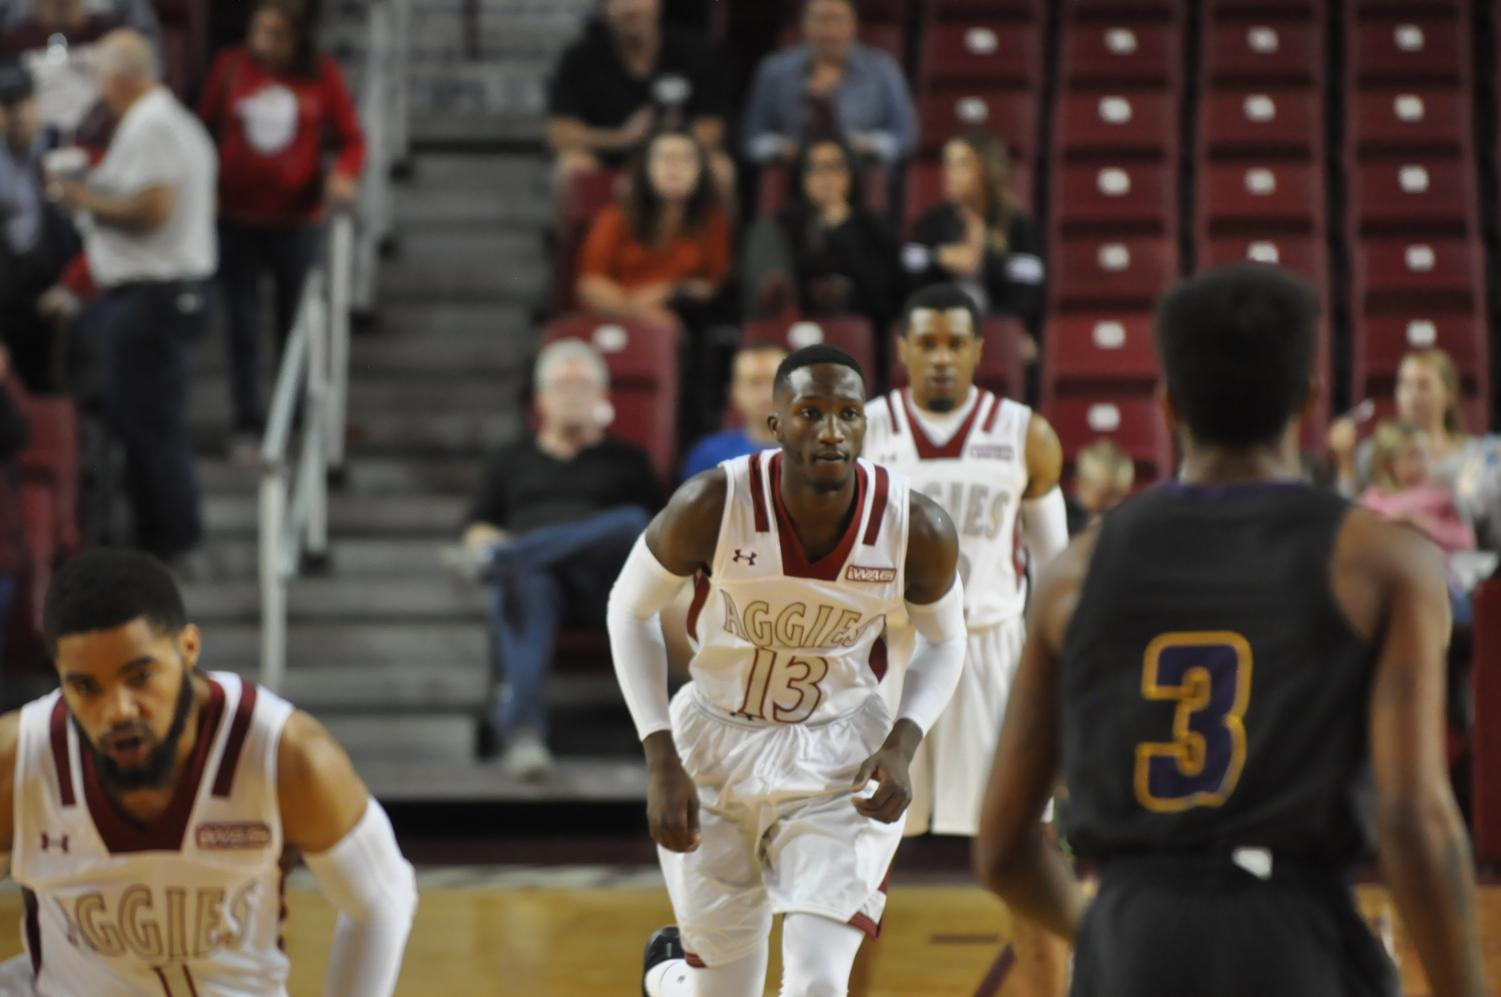 NMSU junior guard Sidy N'Dir looks to play some defense Sunday evening in the Pan American Center. The Aggies Defeated the Panthers 69-57 and improved to 6-1.